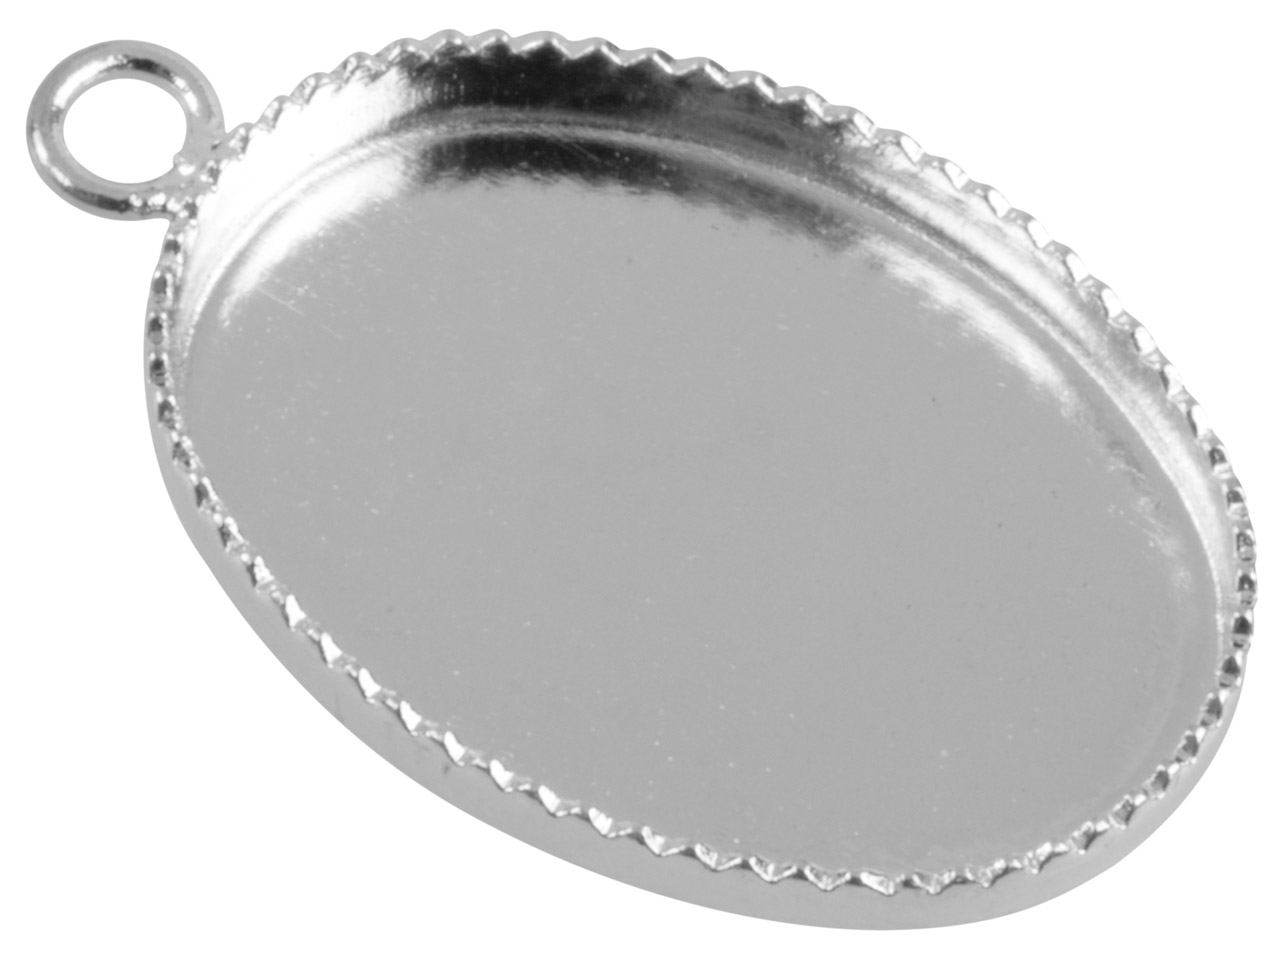 Silver Plated Oval Millgrain Edge   Pendant Setting 18x13mm, Pack of 10